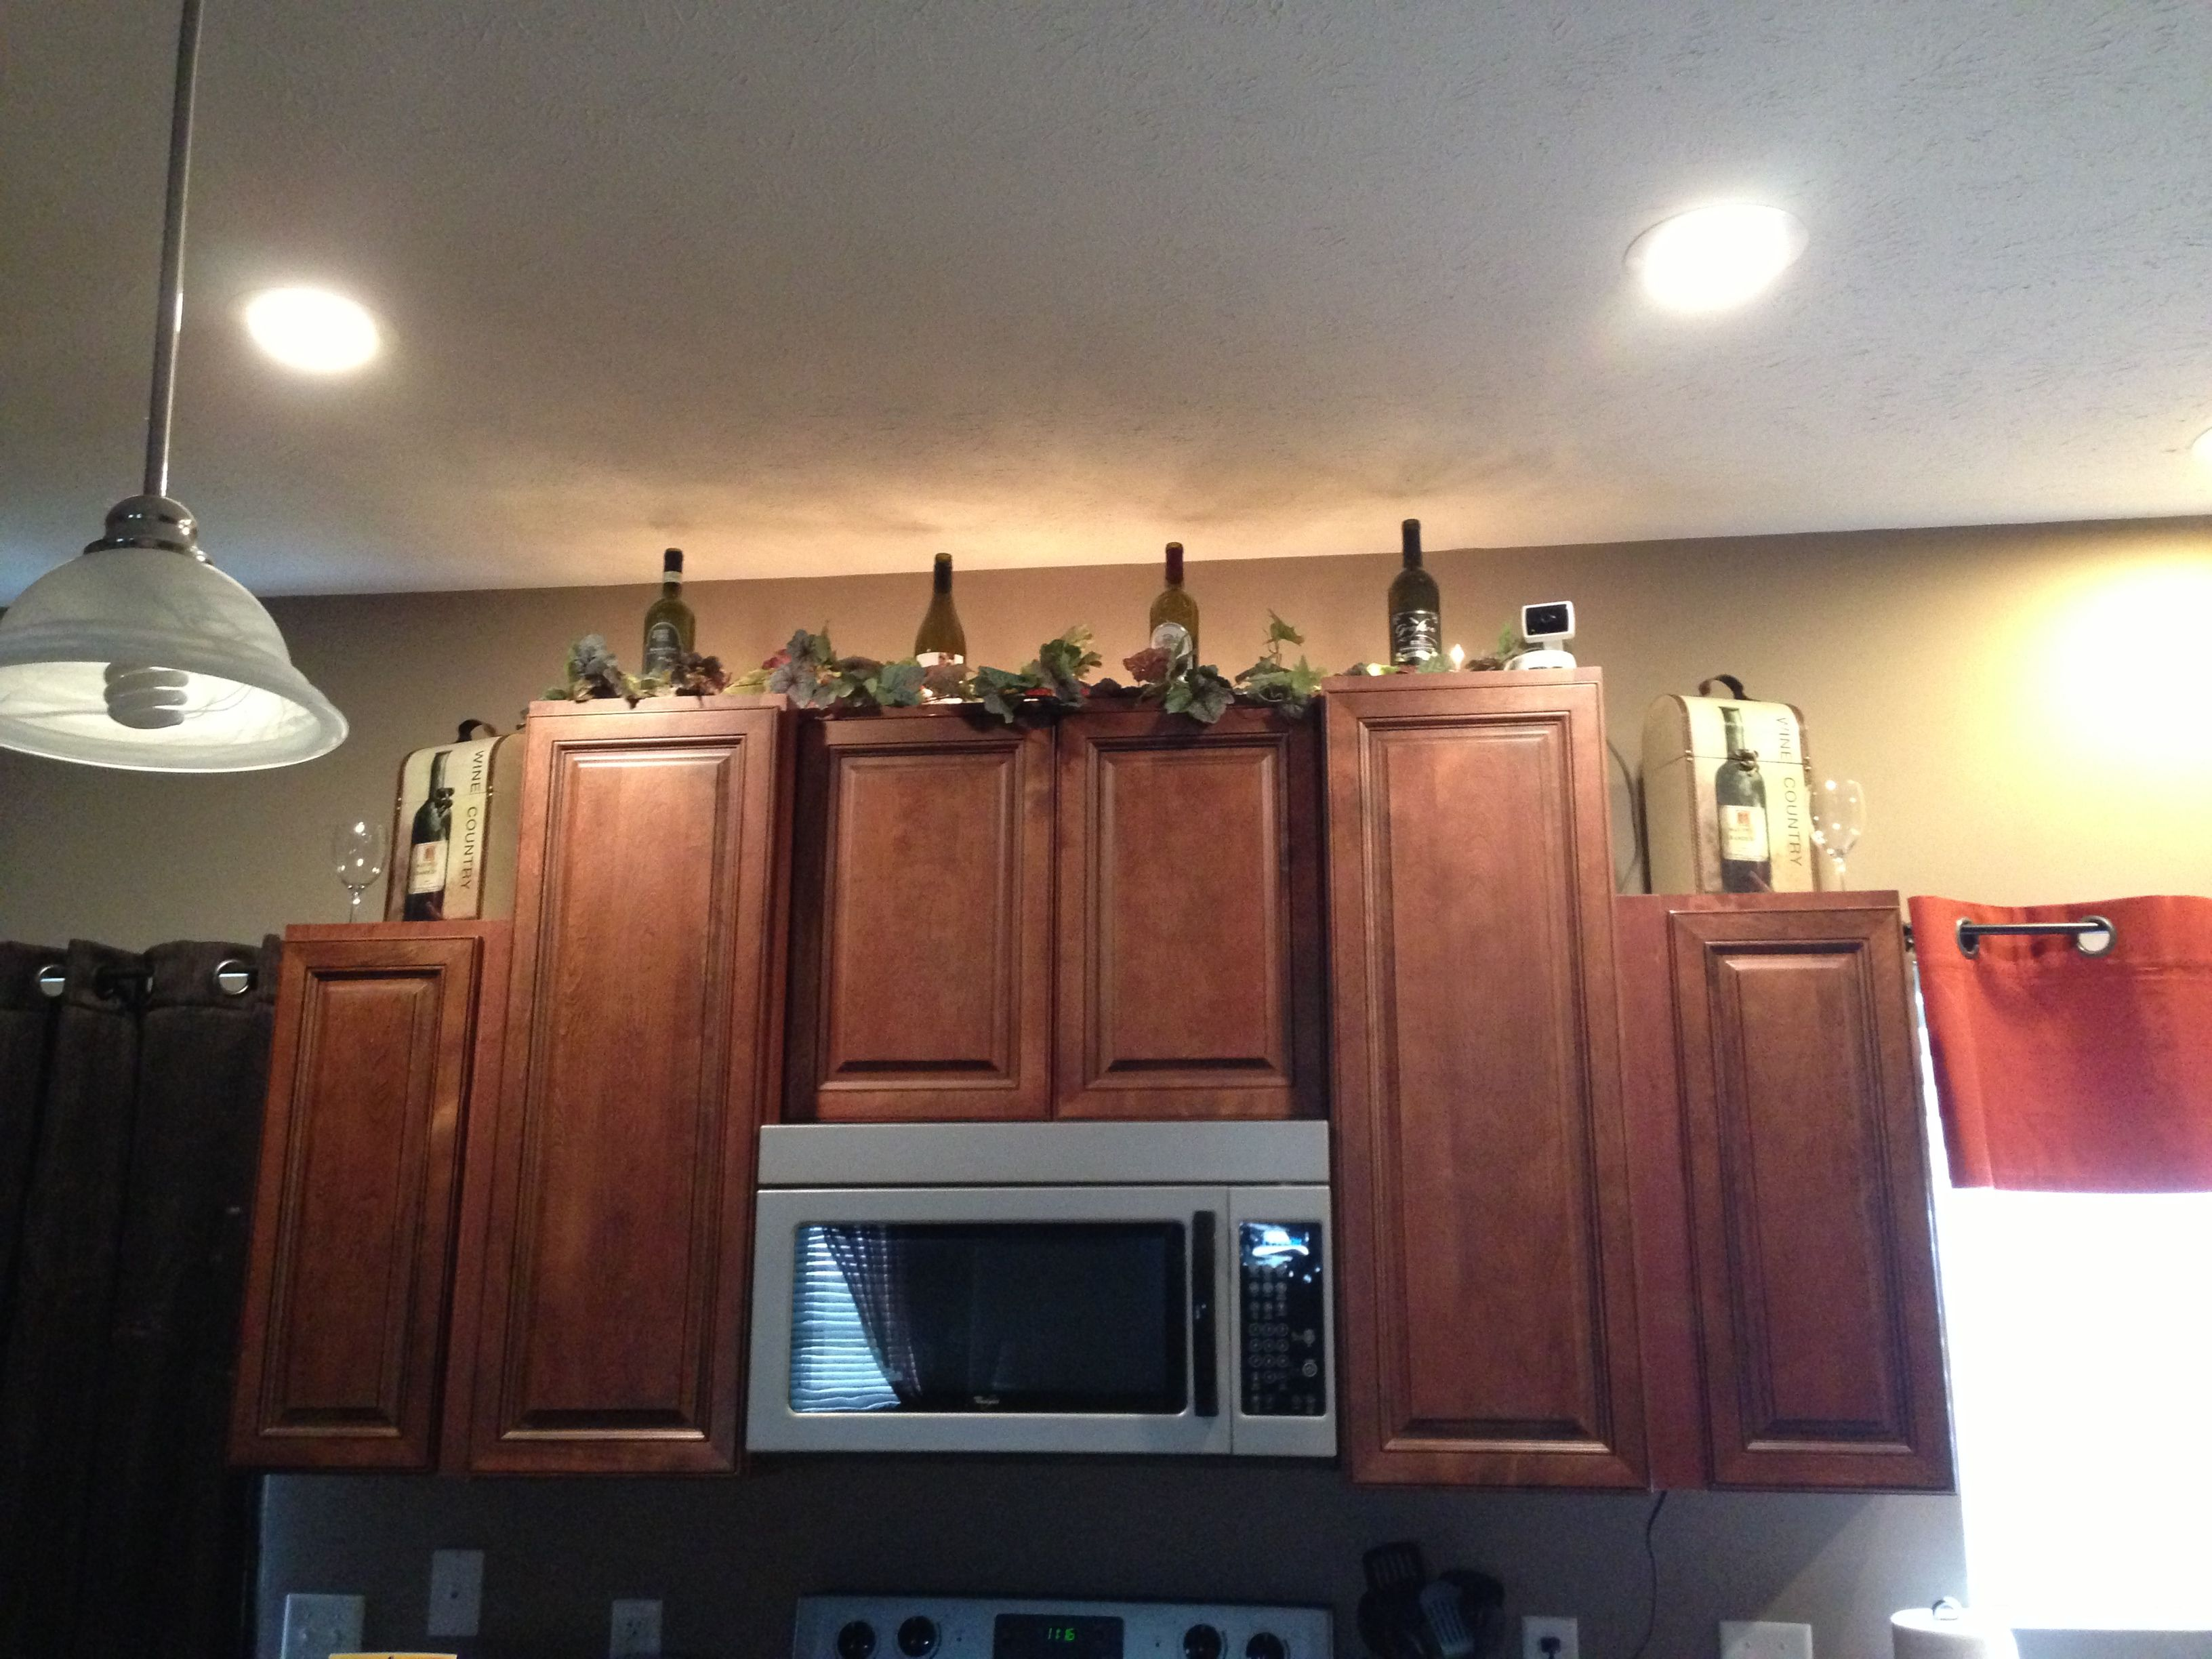 Wine bottle kitchen cabinet decorations home decor ideas for Above cupboard decoration ideas